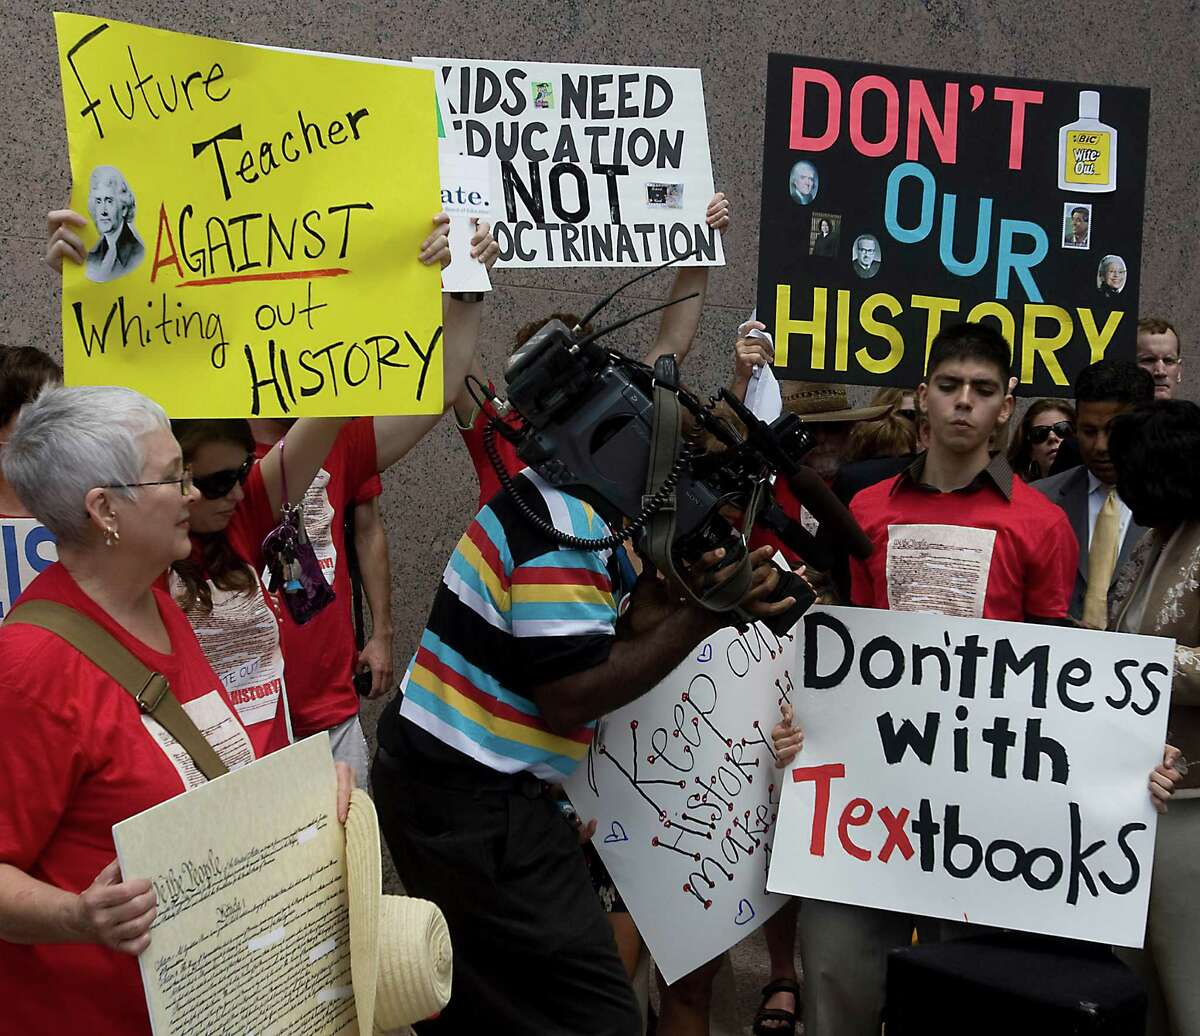 In this 2010 file photo, a member of the media takes close-up video of a protest sign at a rally outside a State Board of Education meeting. The Texas Board of Education approved textbooks with a deeply flawed version of American history.